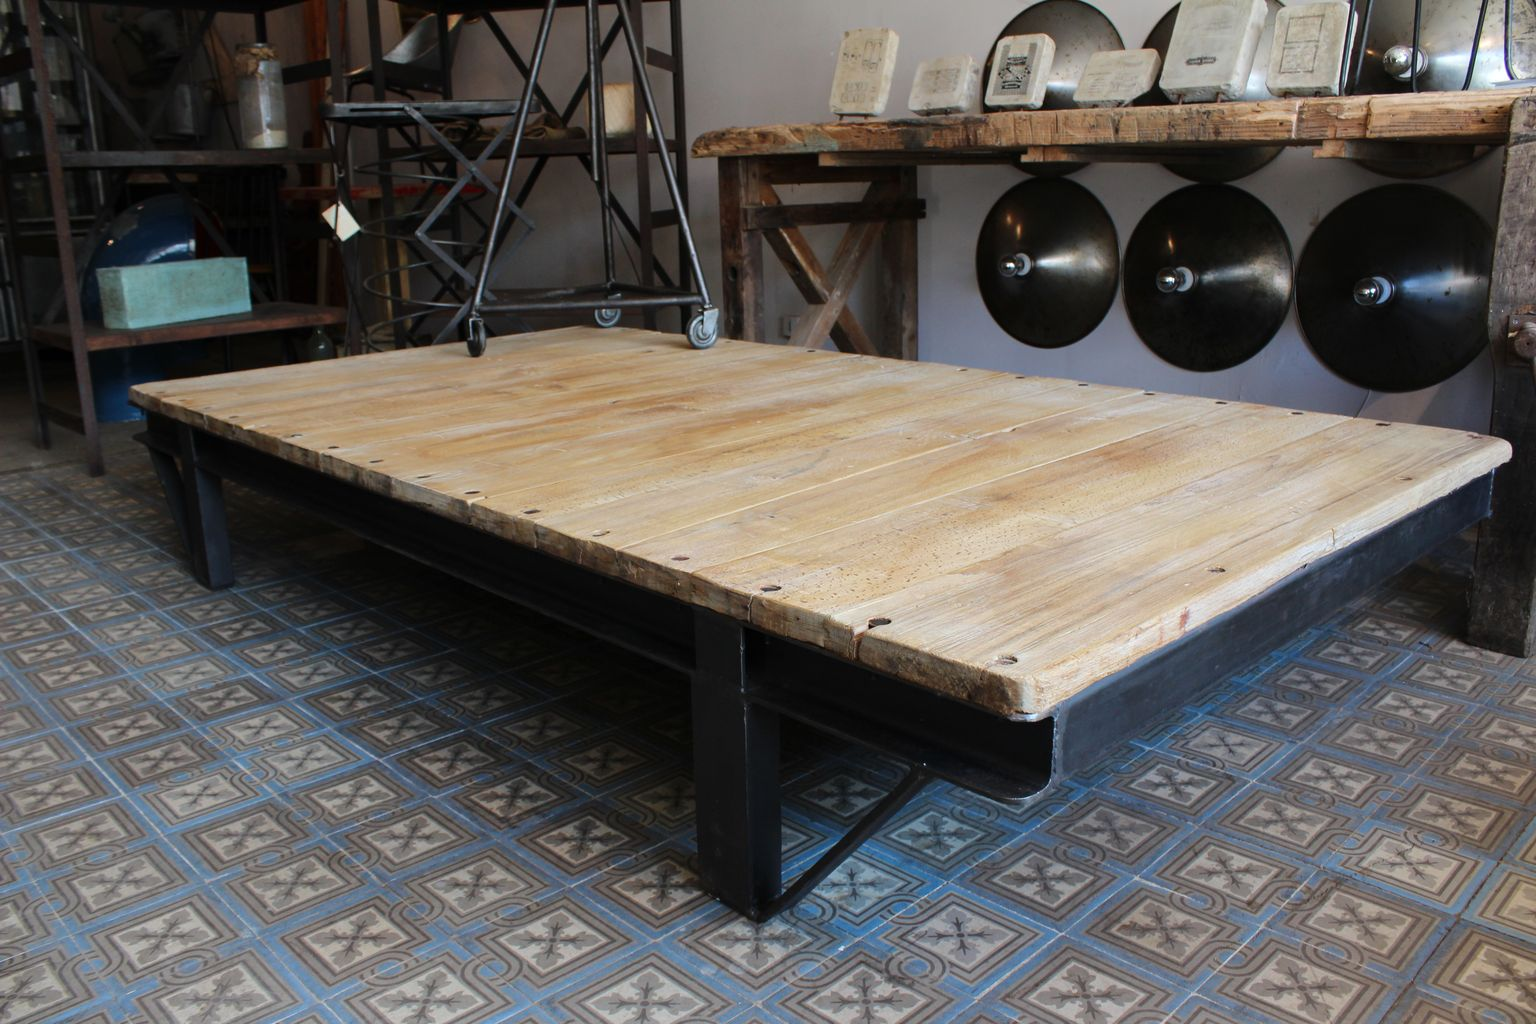 Grande Table Basse Idees De Decoration Interieure French